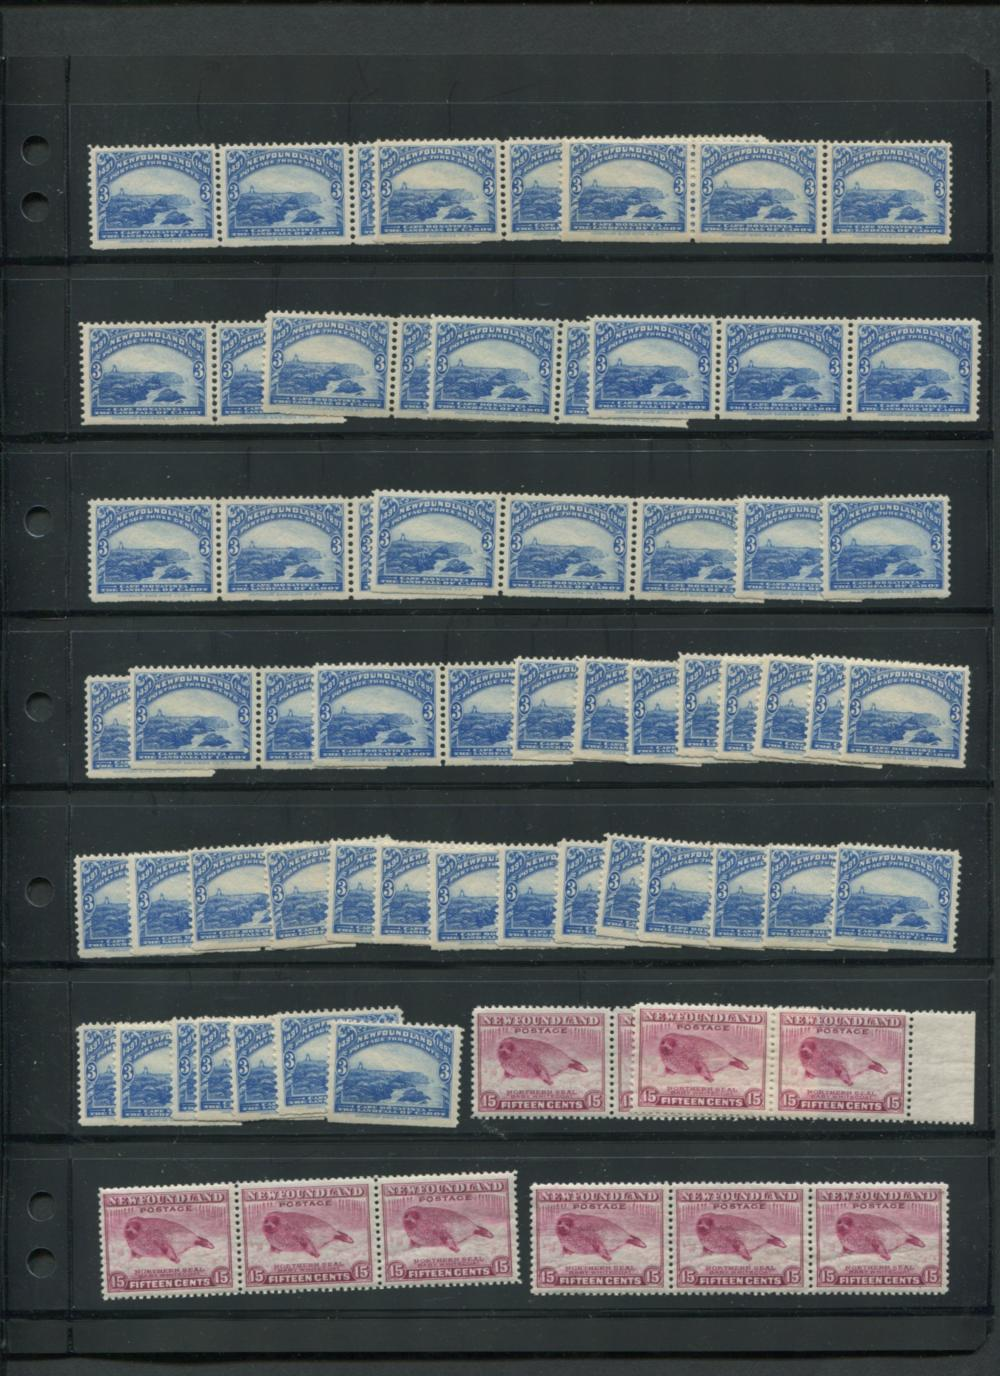 Canada Newfoundland MNH Stamp Collection